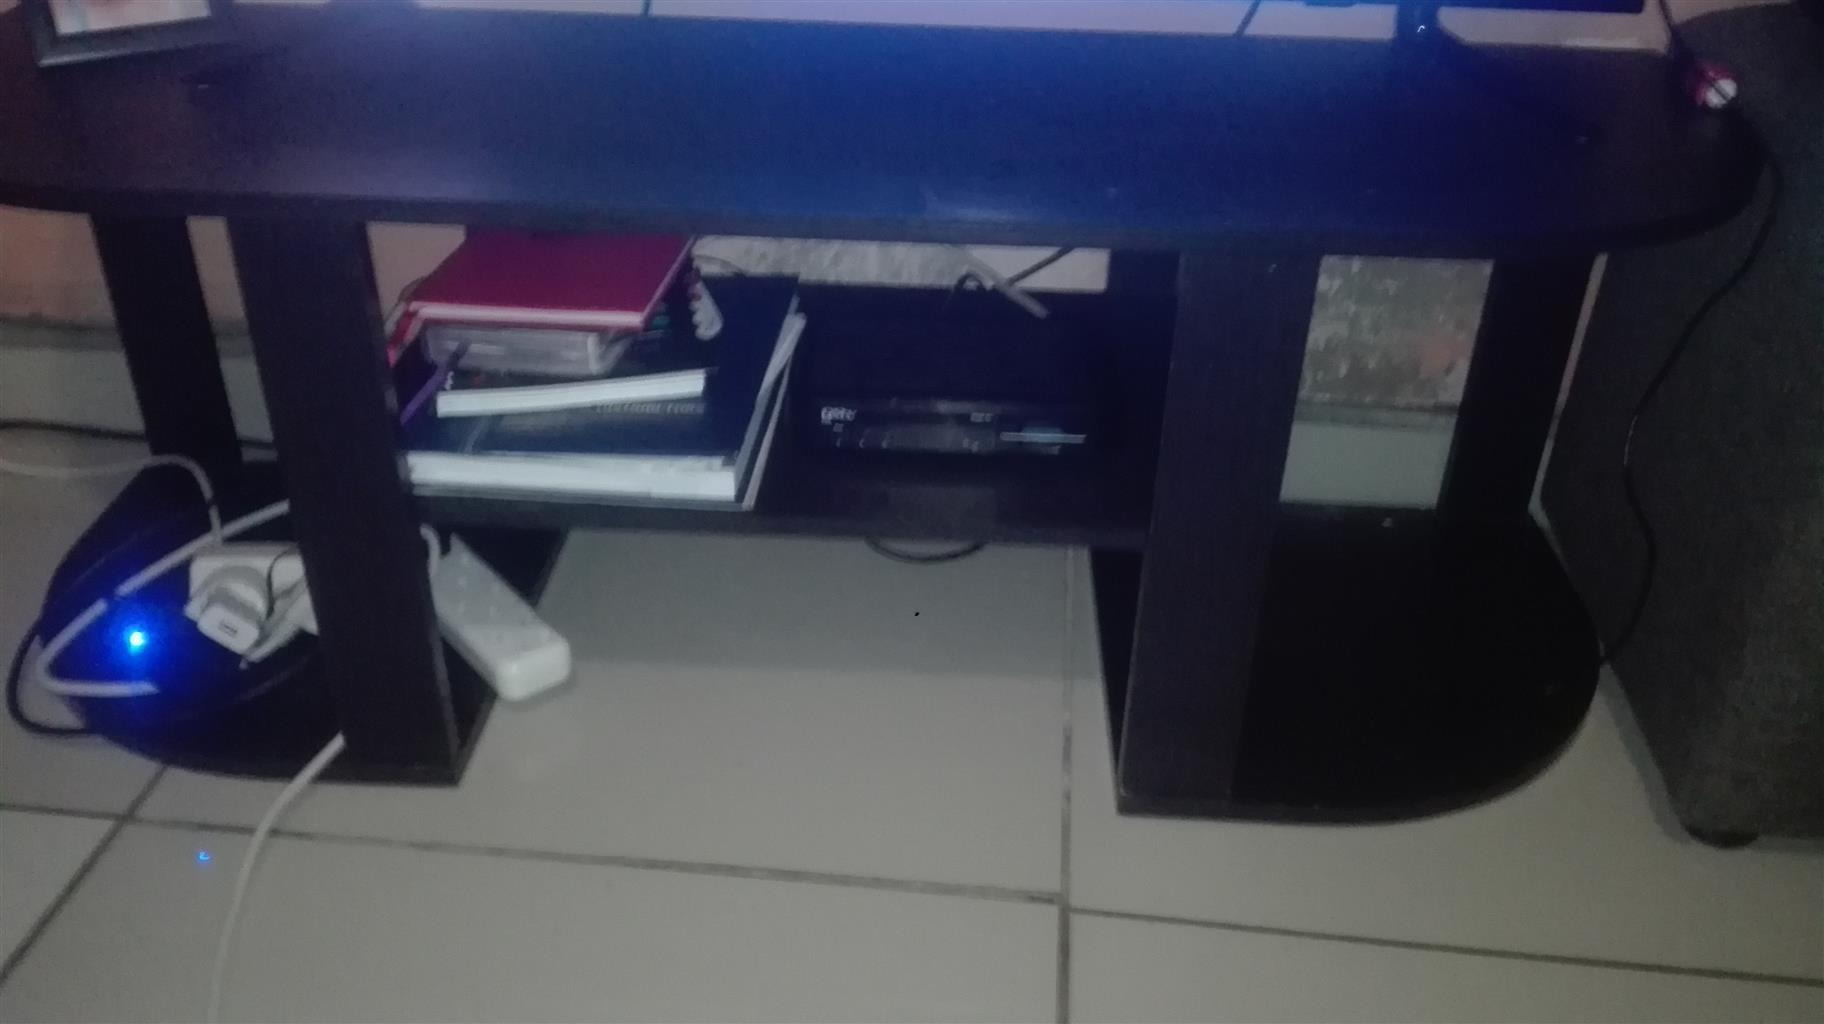 Black tv stand that I bought from game 2017 steel in a ft condition